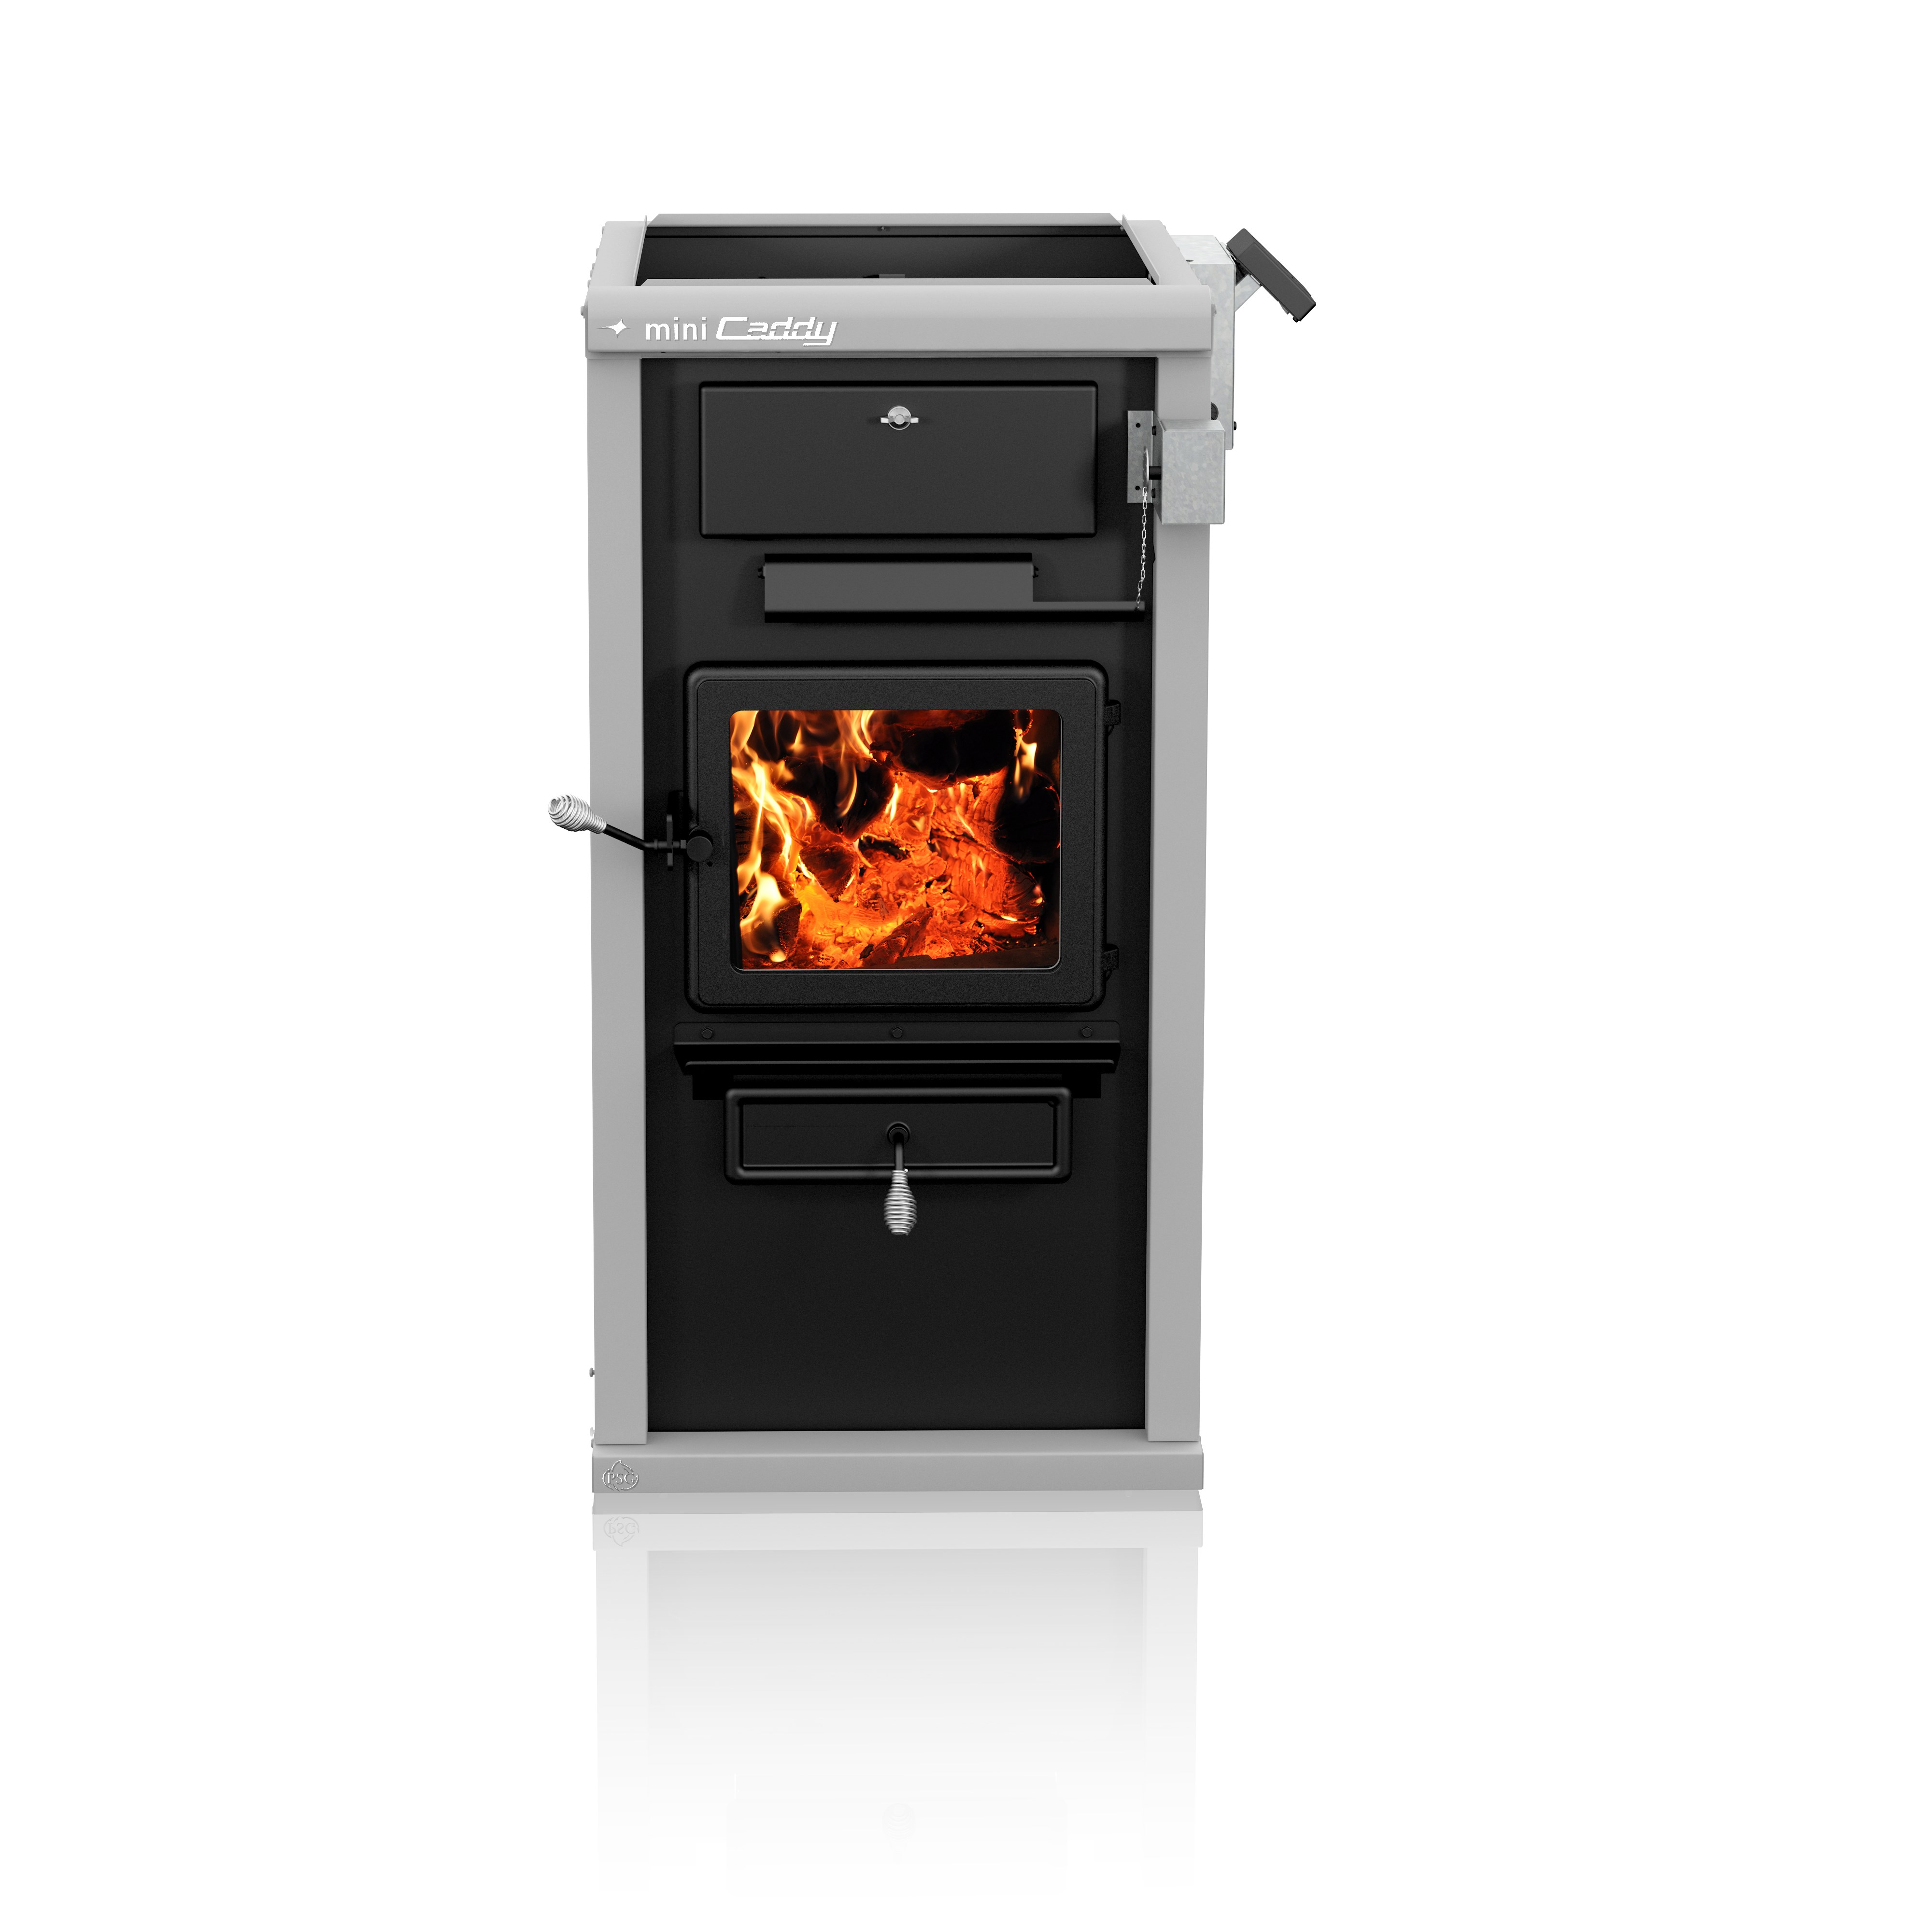 Wood furnace for home - Mini-Caddy | Caddy Furnaces